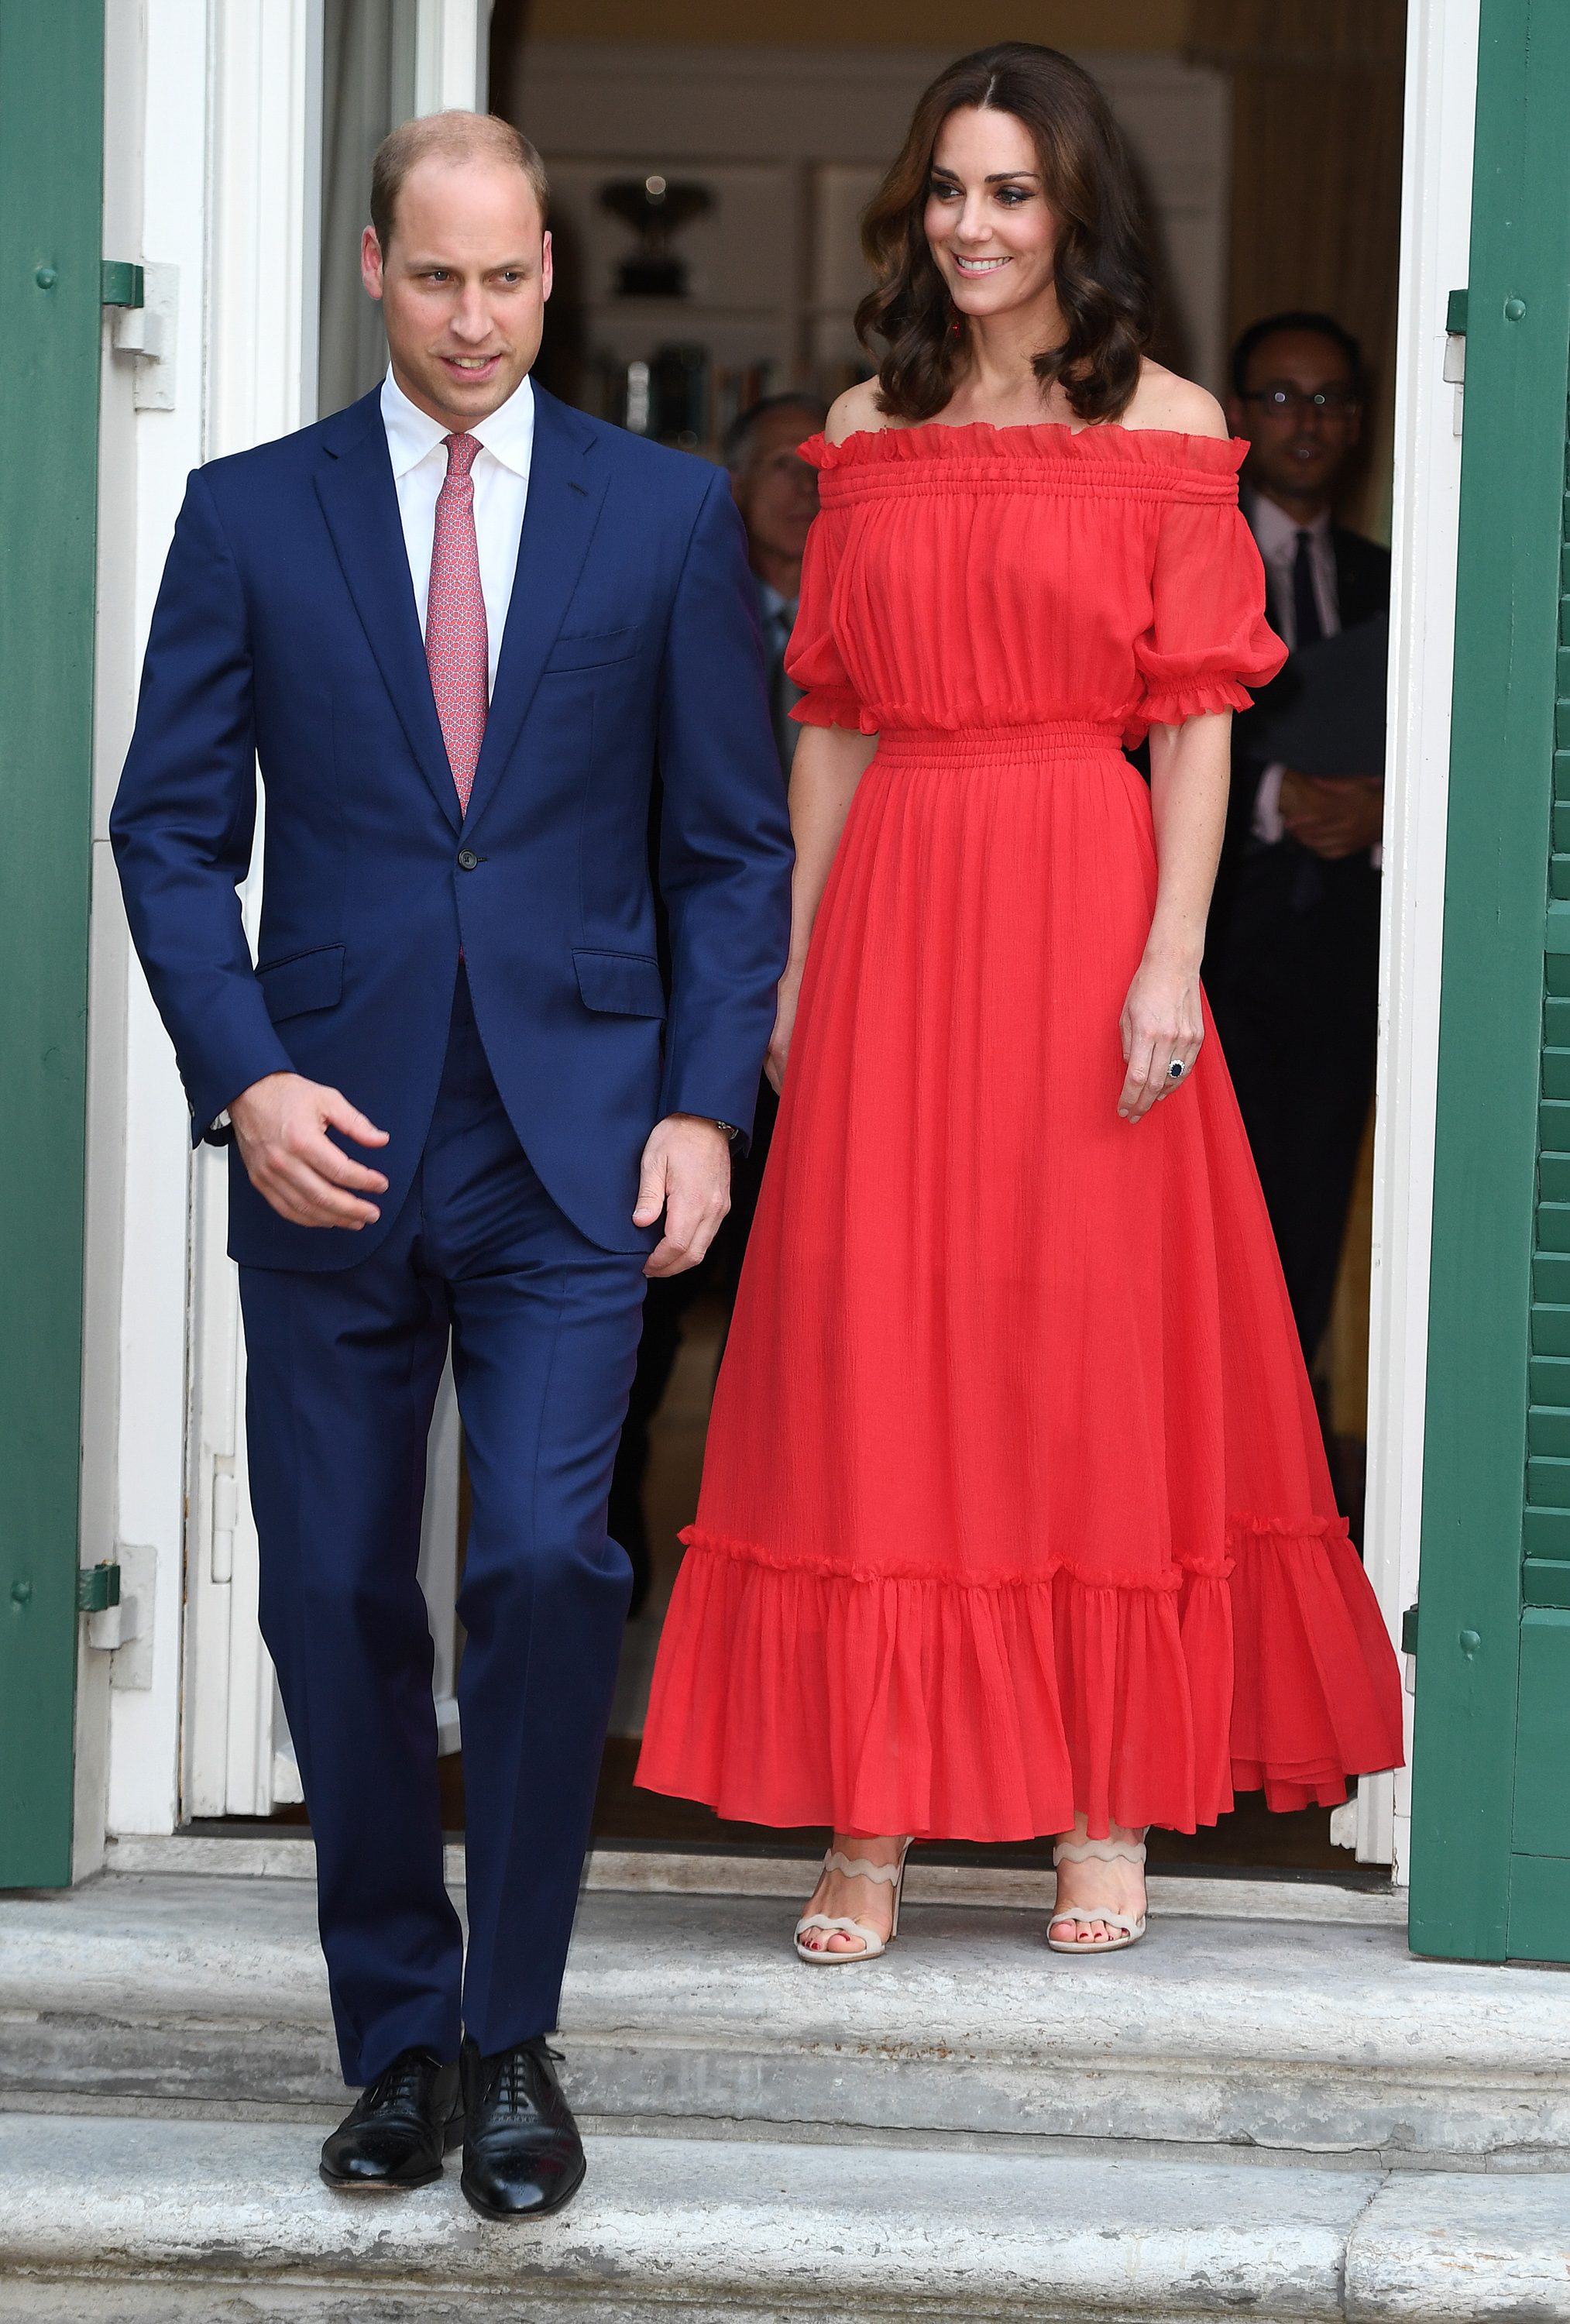 Kate Middleton S Dresses Are Perfect For Summer Weddings